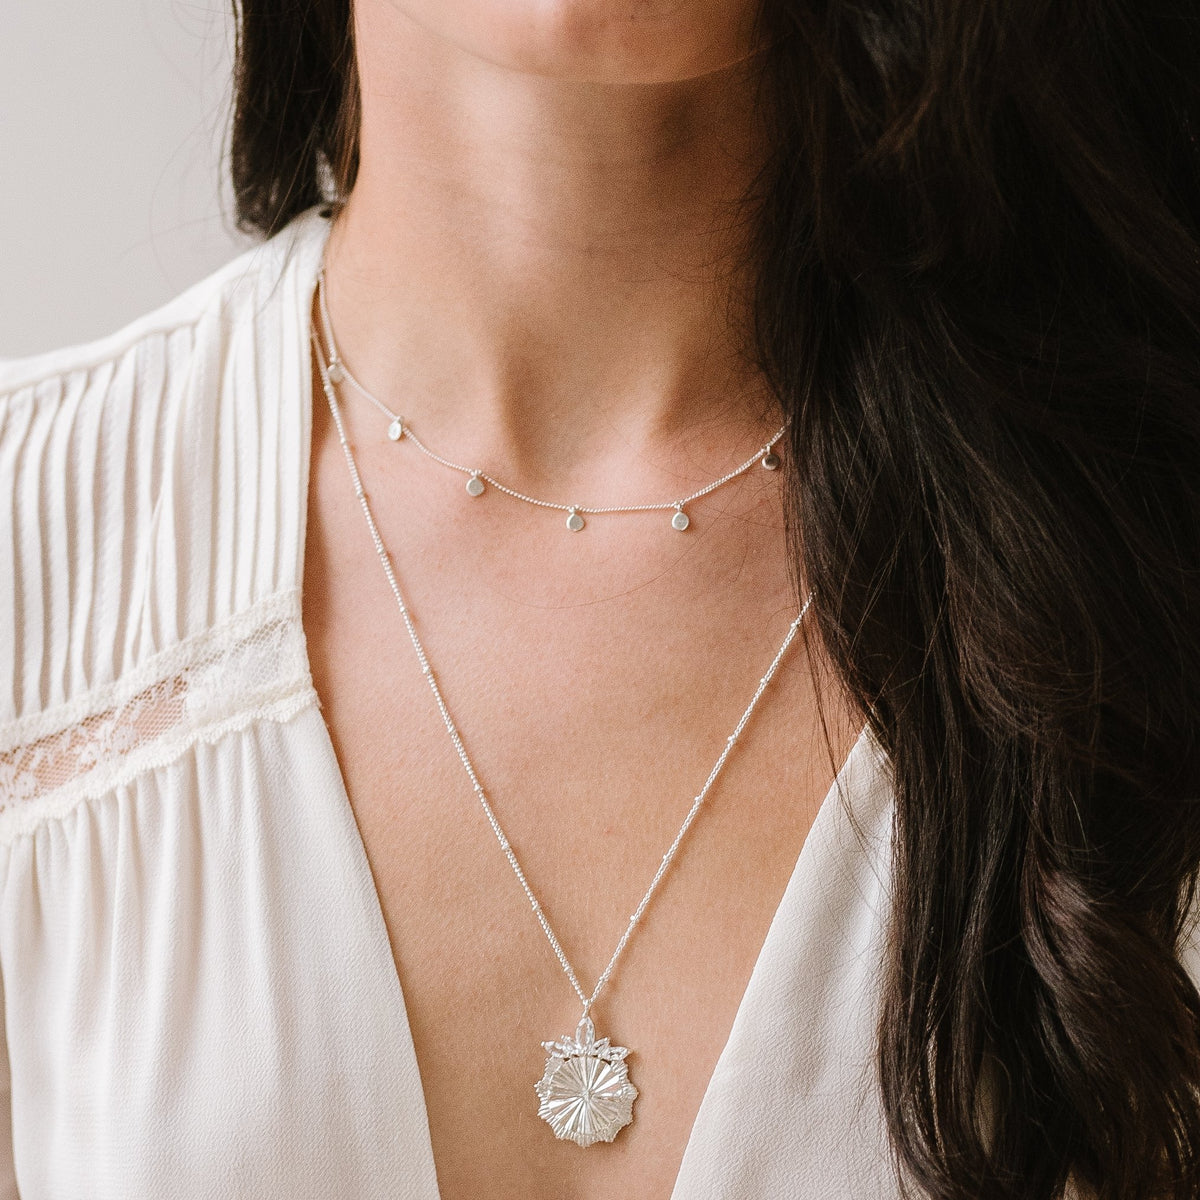 BELIEVE SOLEIL PENDANT NECKLACE - WHITE TOPAZ & SILVER - SO PRETTY CARA COTTER